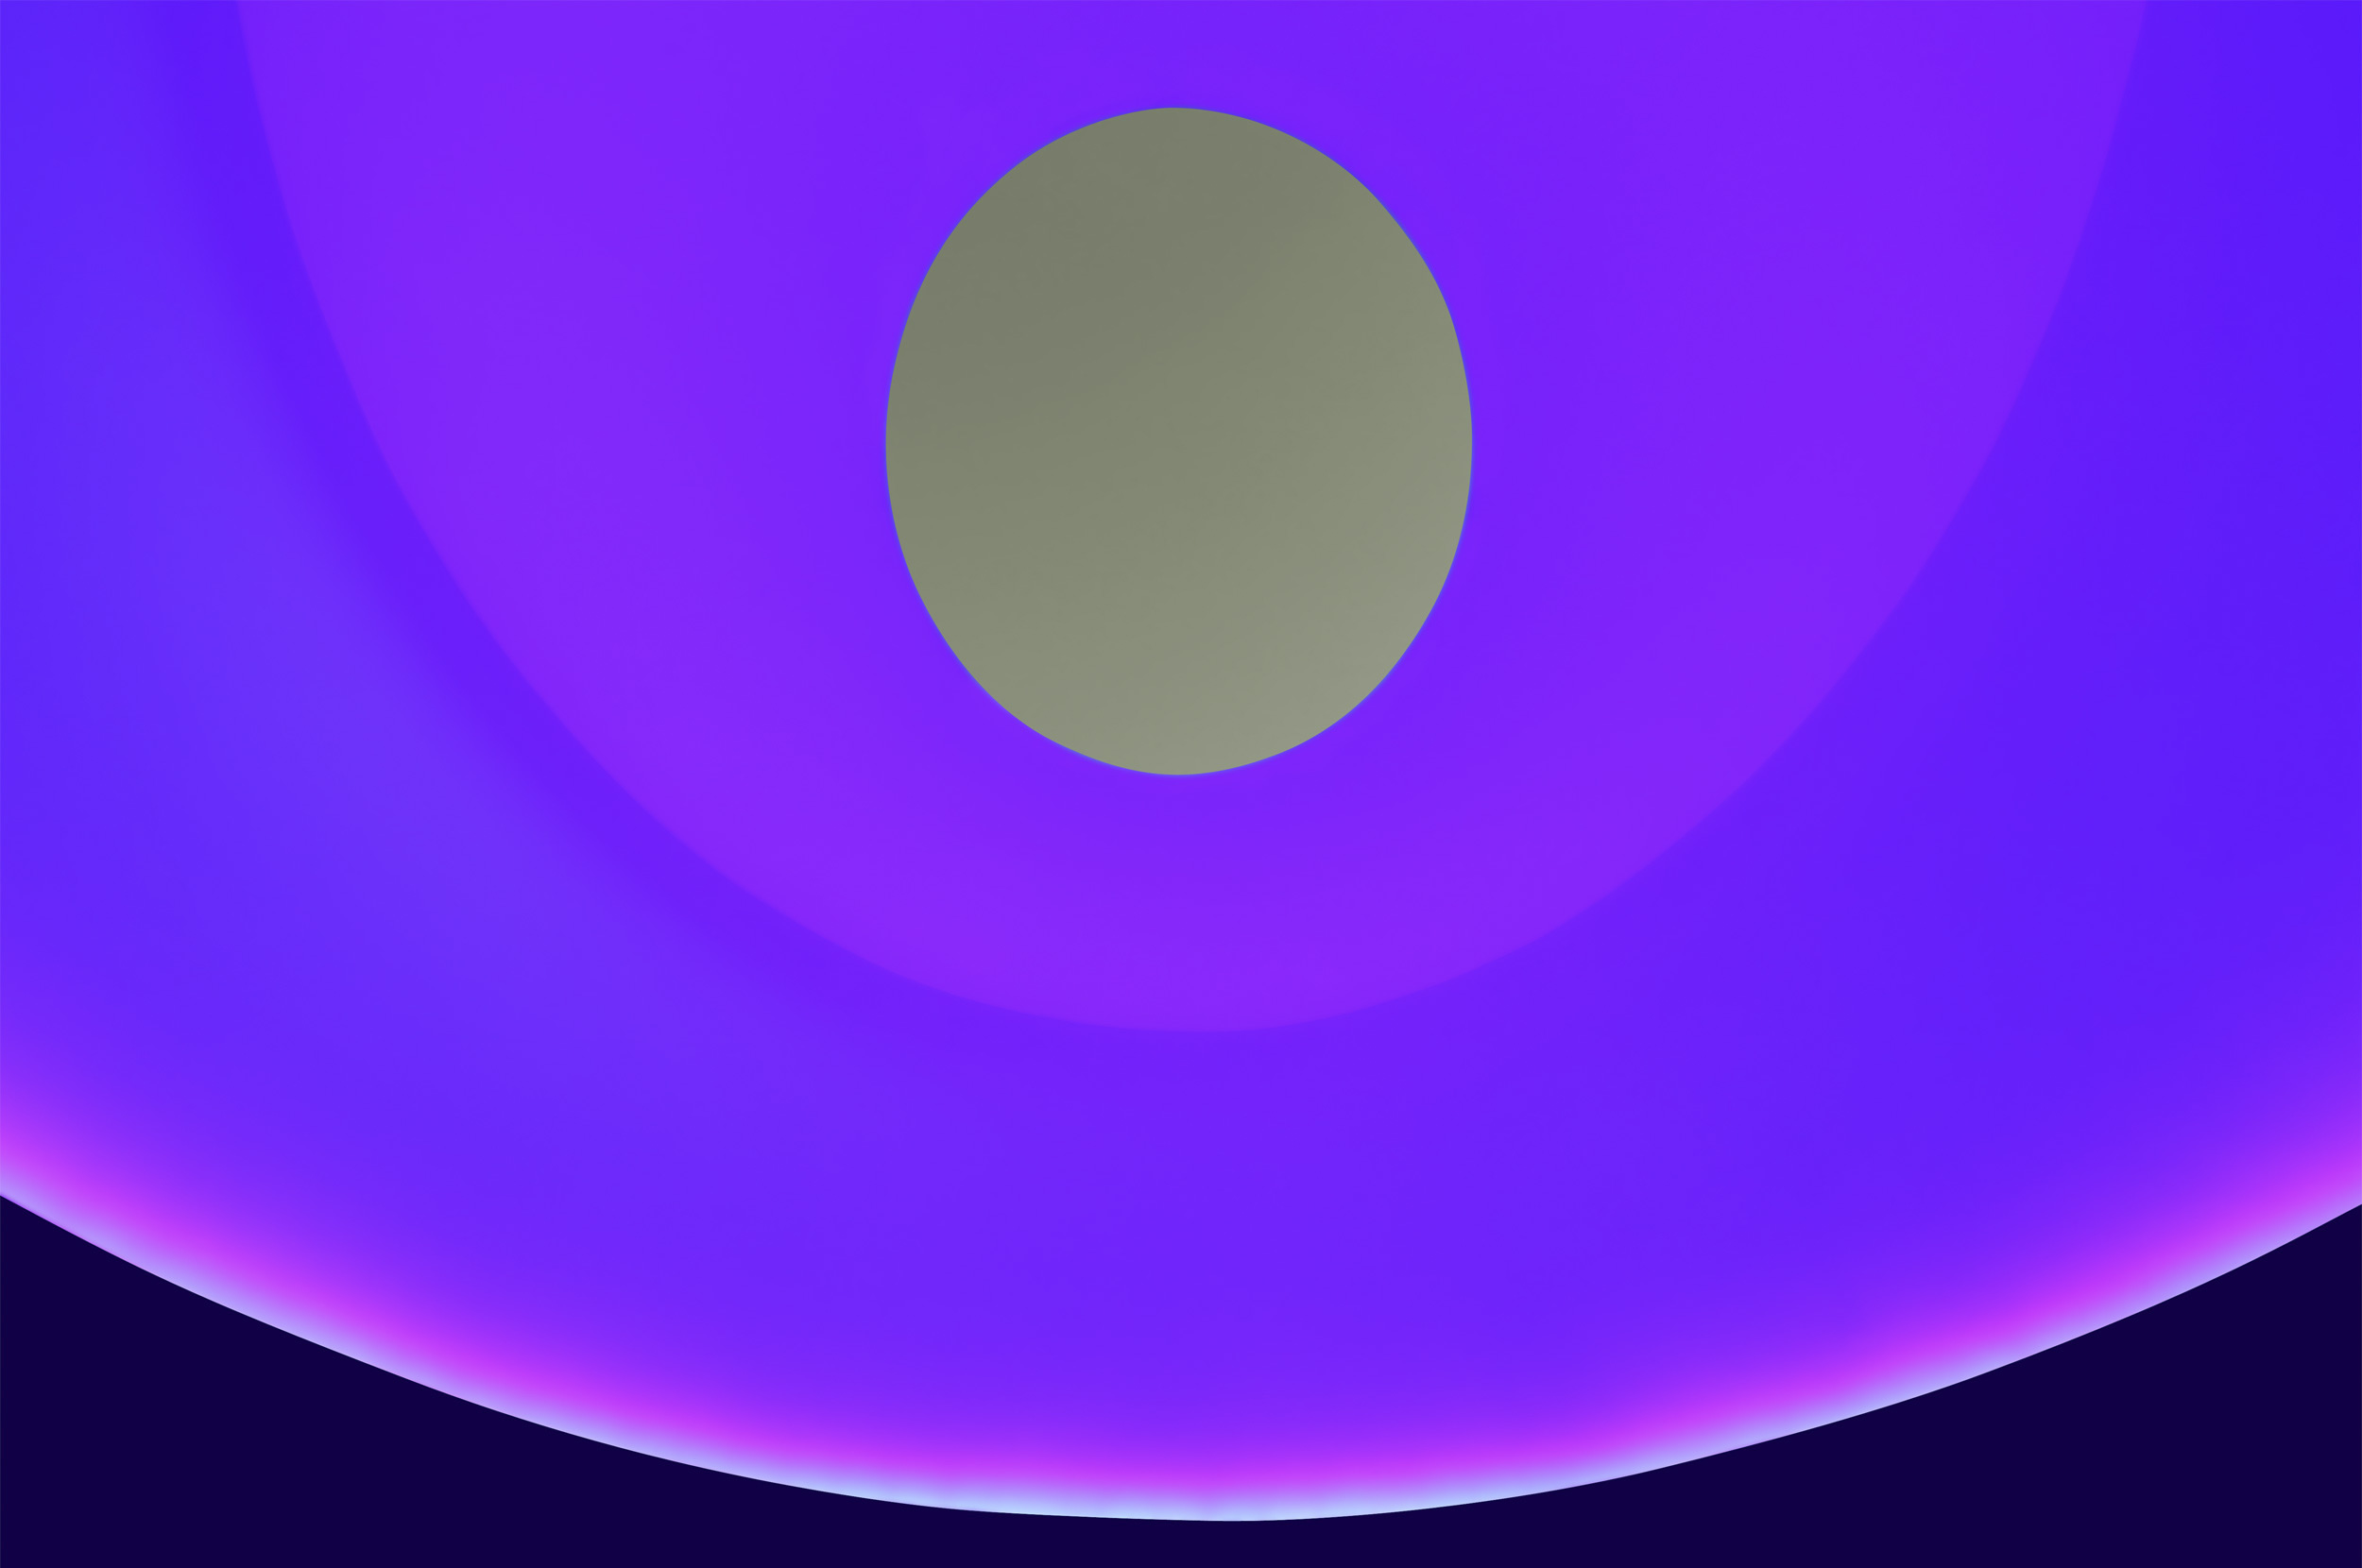 Photo of the ceiling colored with magenta and blue lights and a gray-green oculus.